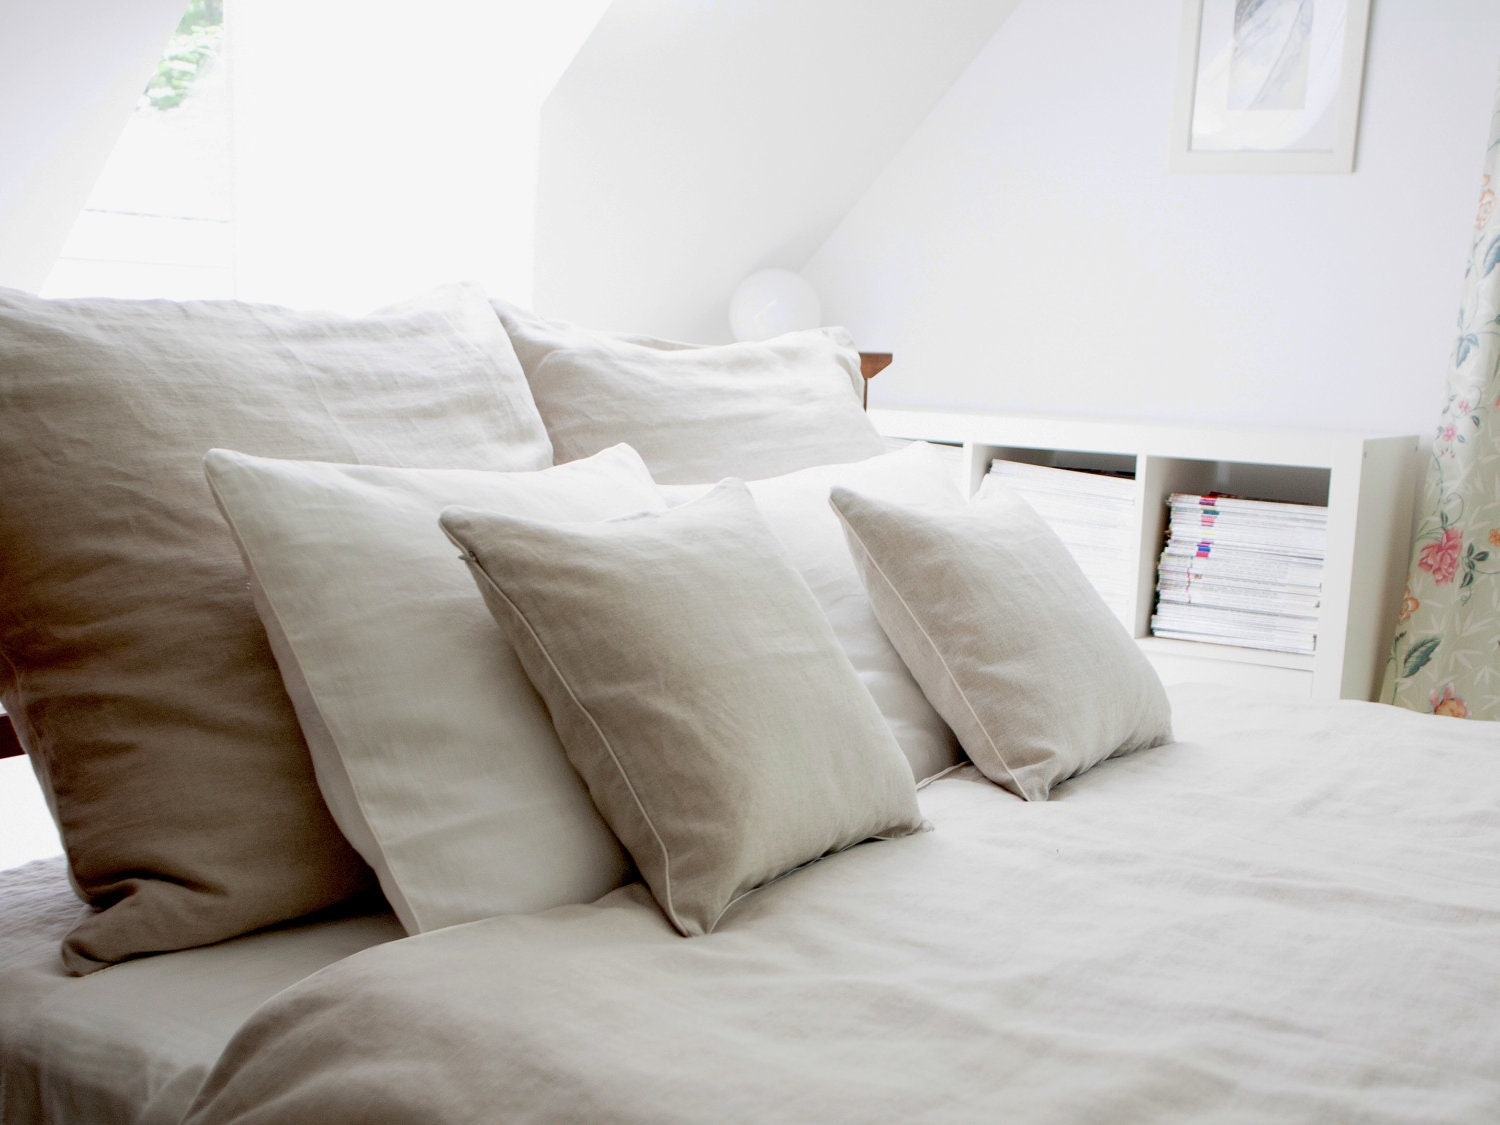 Bed sheets in every imaginable color and reformpan.gq has been visited by 10K+ users in the past monthAssembled In The USA · High-Value Bedding · Quality GuaranteedTypes: Organic Cotton Sheets, Luxury Down Comforters, Premium Down Alternative.